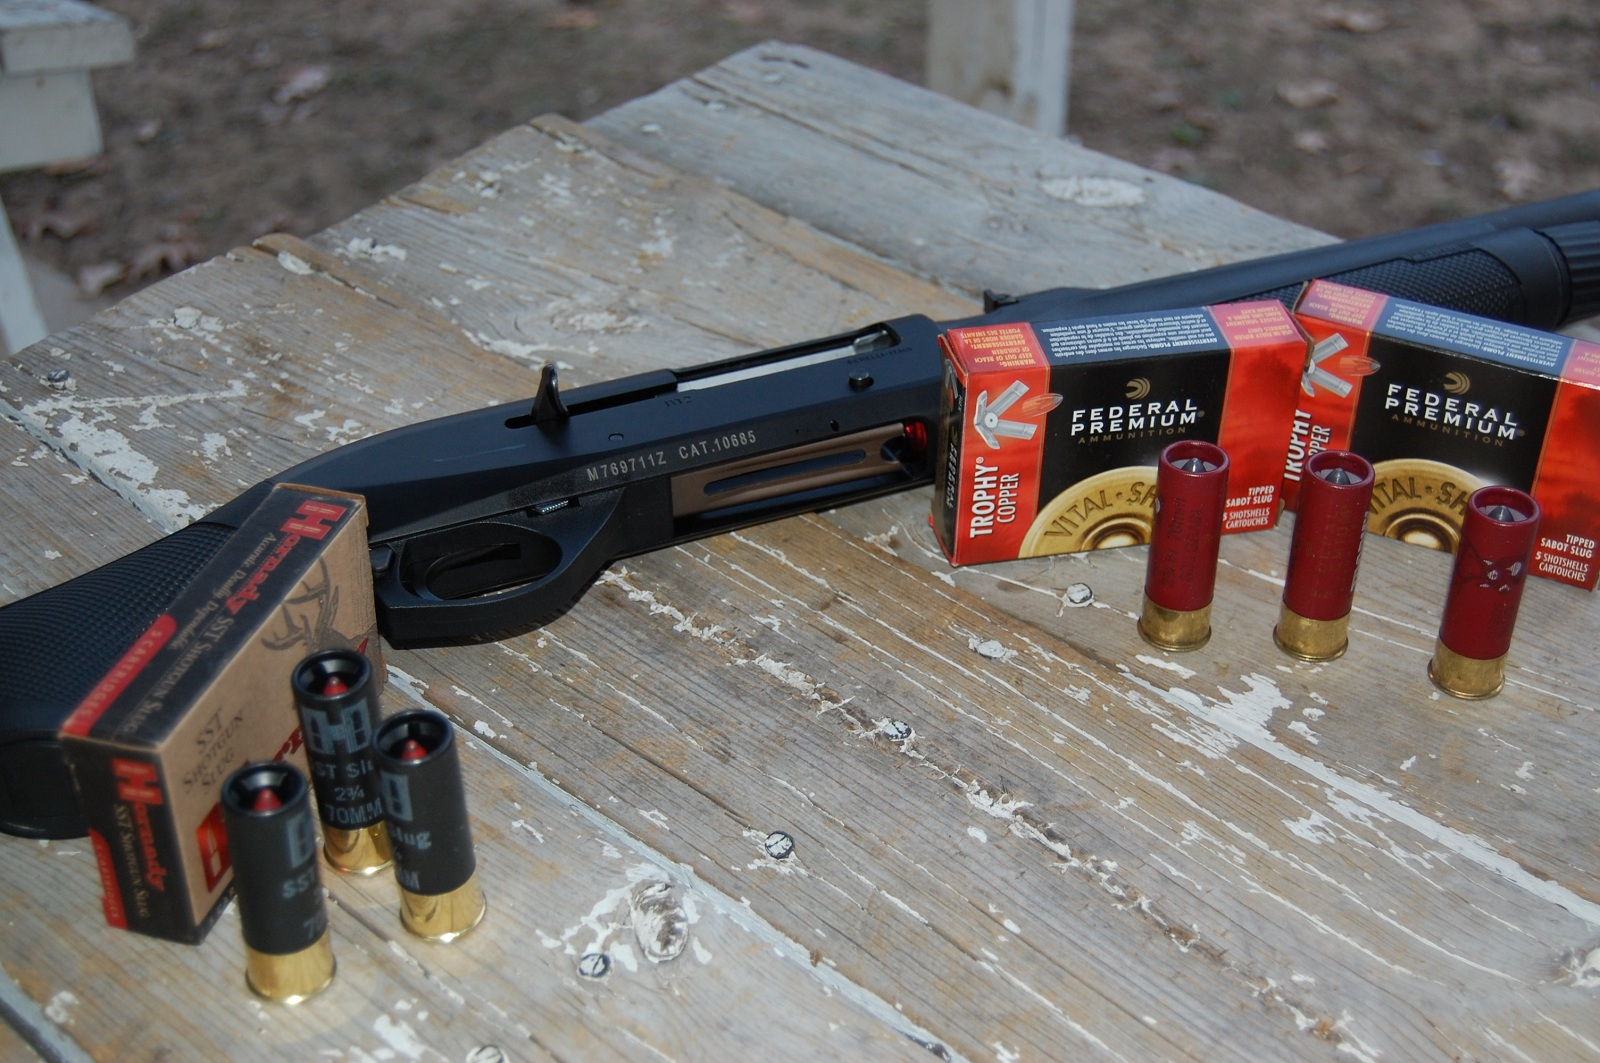 Benelli M2 Tactical Reviews - Federal slugs were the most consistent through the m2 but the hornady ssts were a